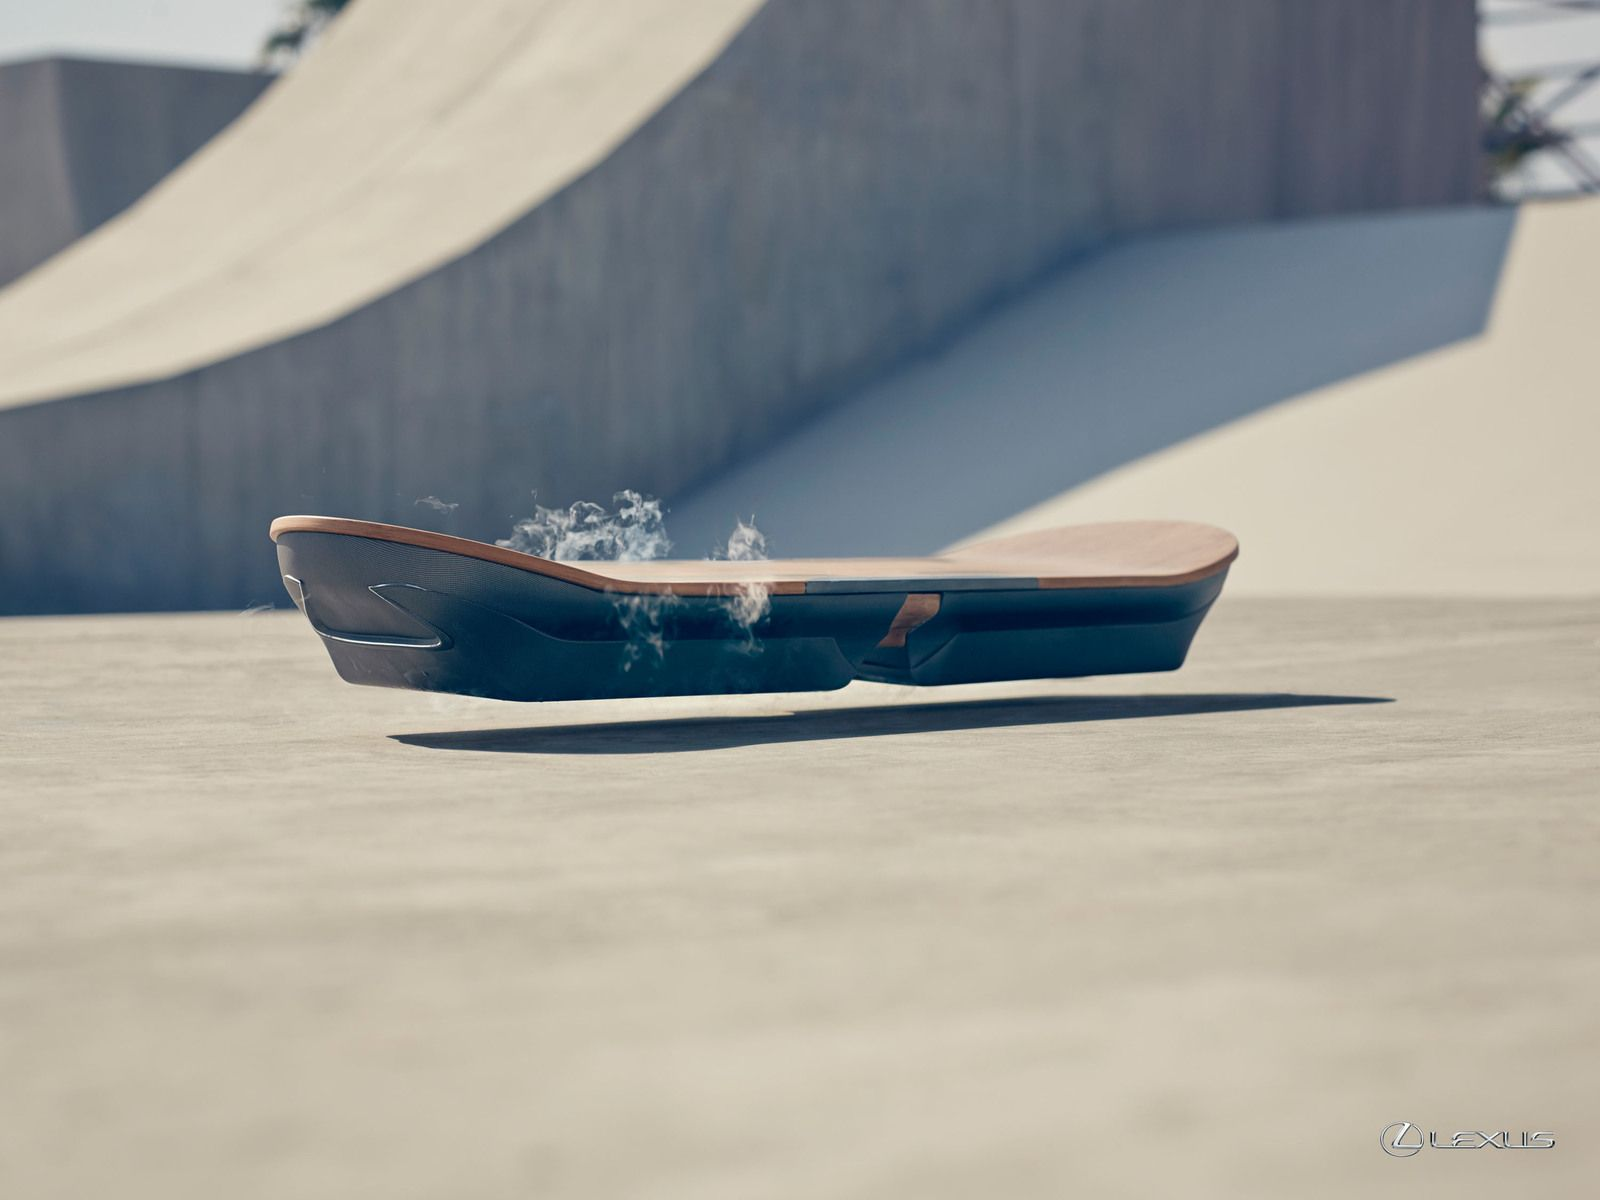 Lexus Hoverboard Price >> Lexus Hoverboard Price World Car Brands Cars Used Cars